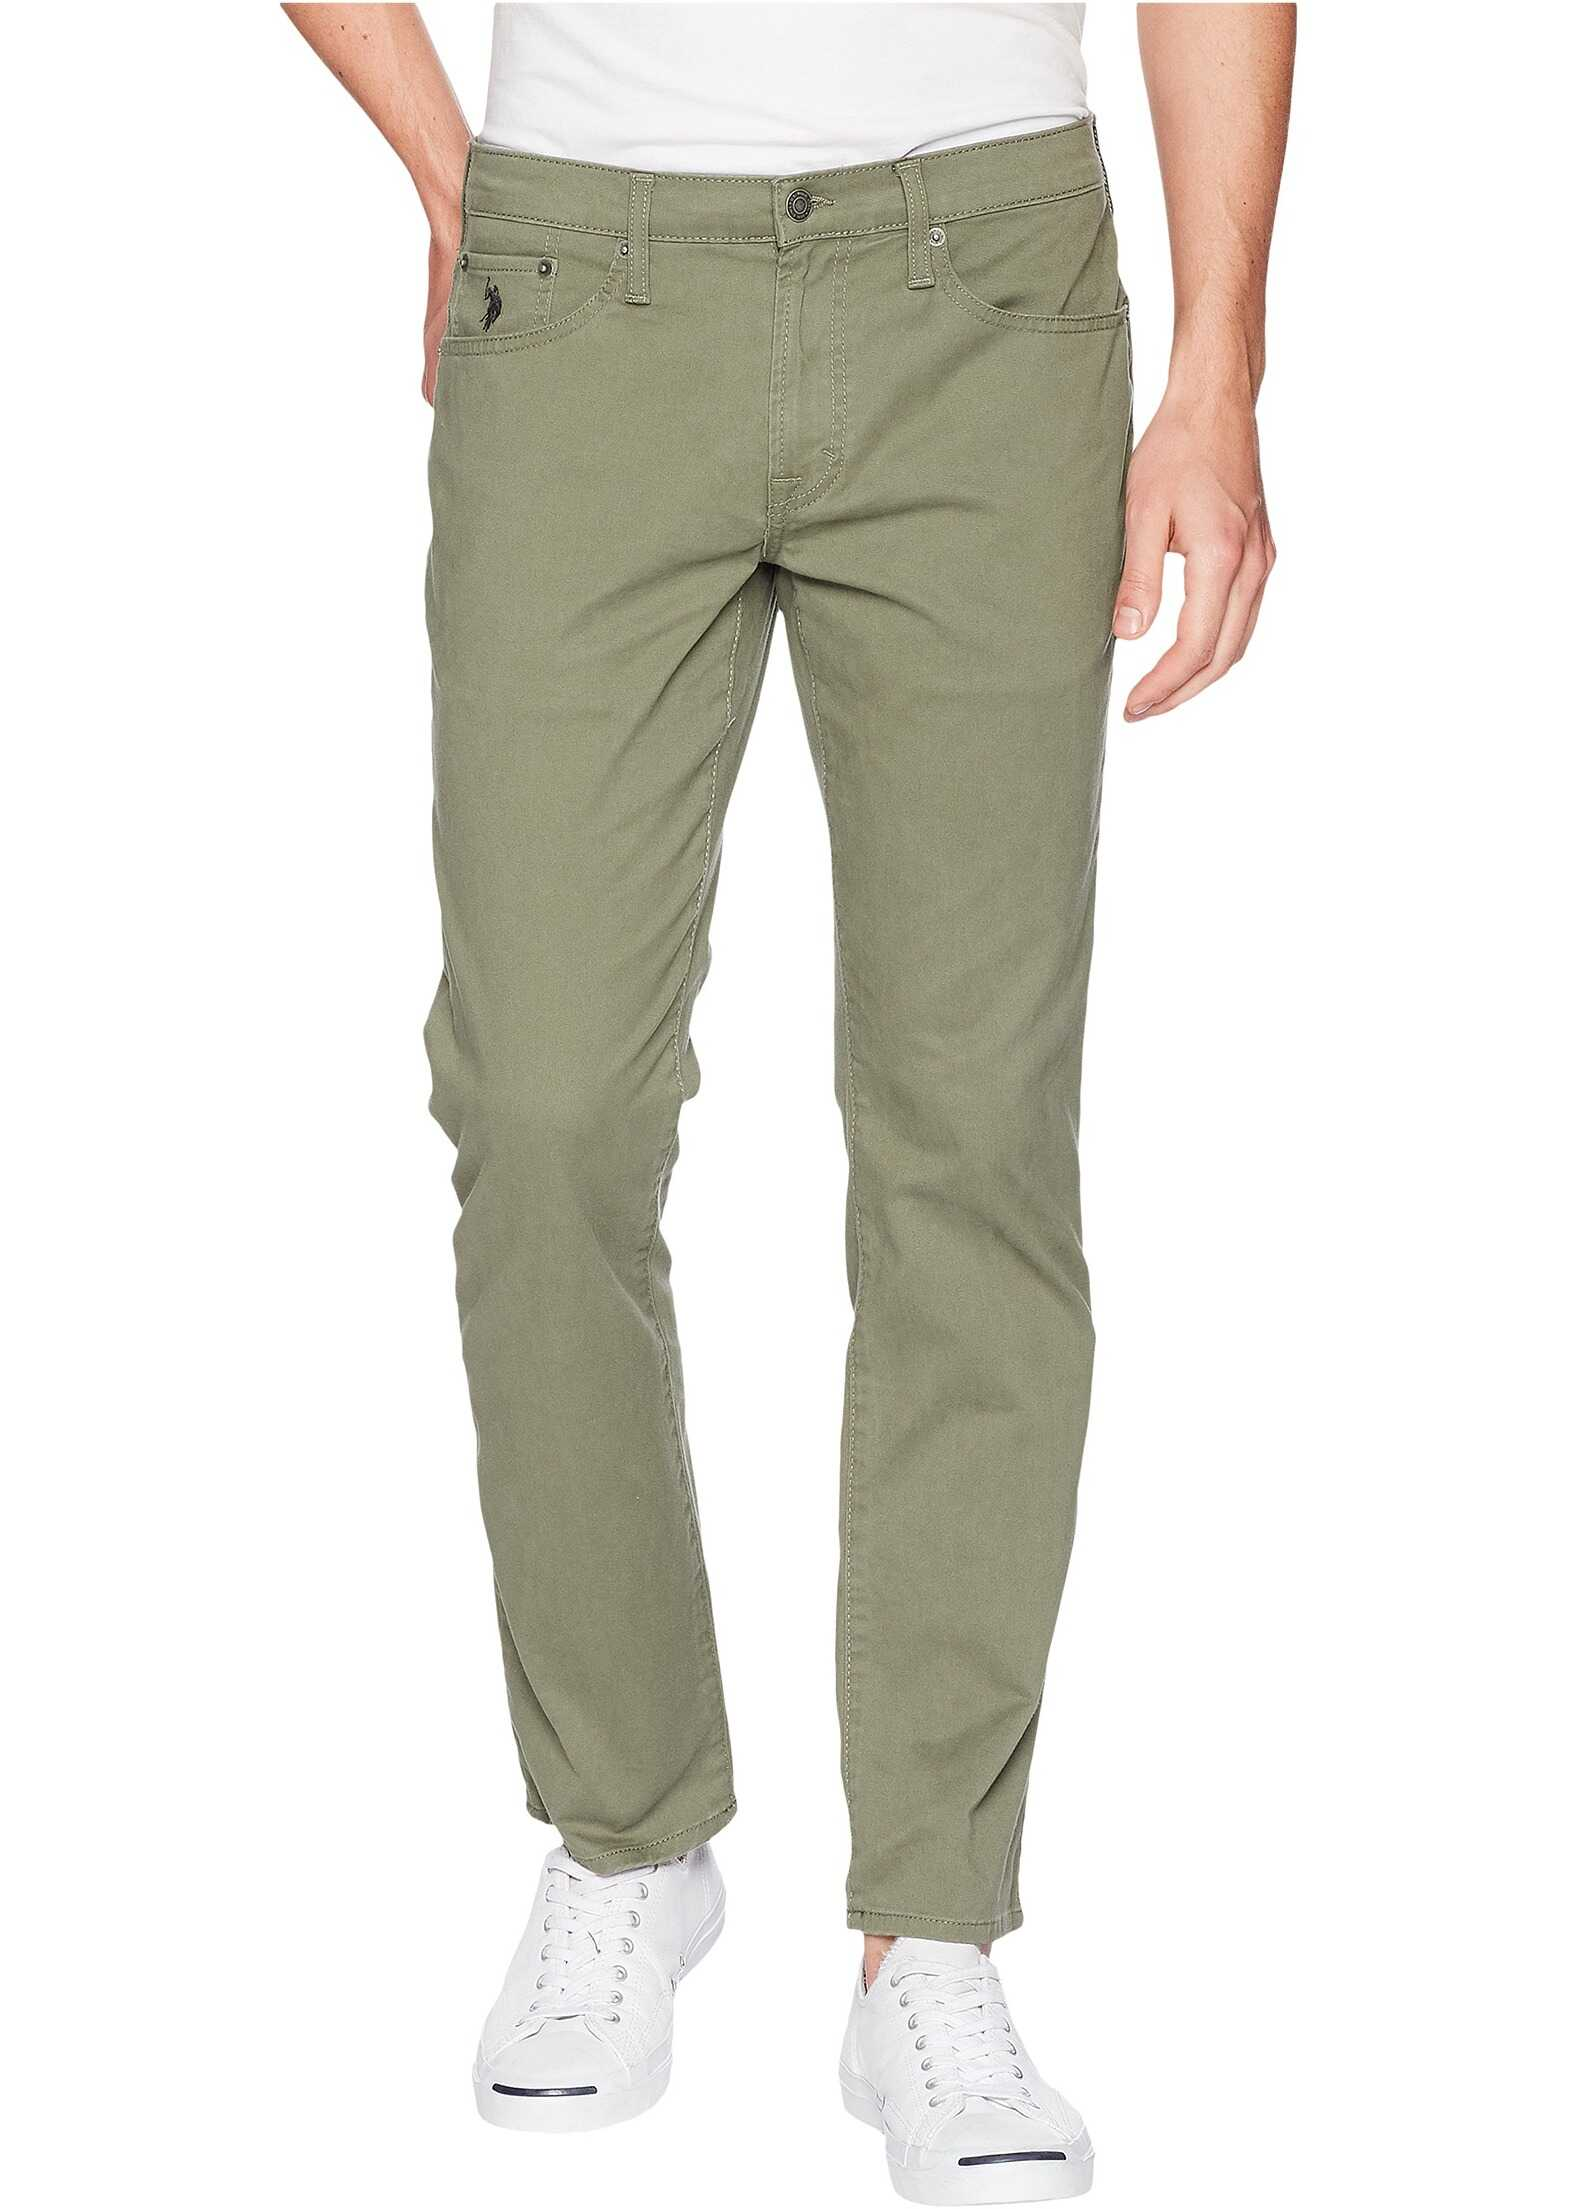 U.S. POLO ASSN. Slim Straight Stretch Five-Pocket Pants Olive Dusk